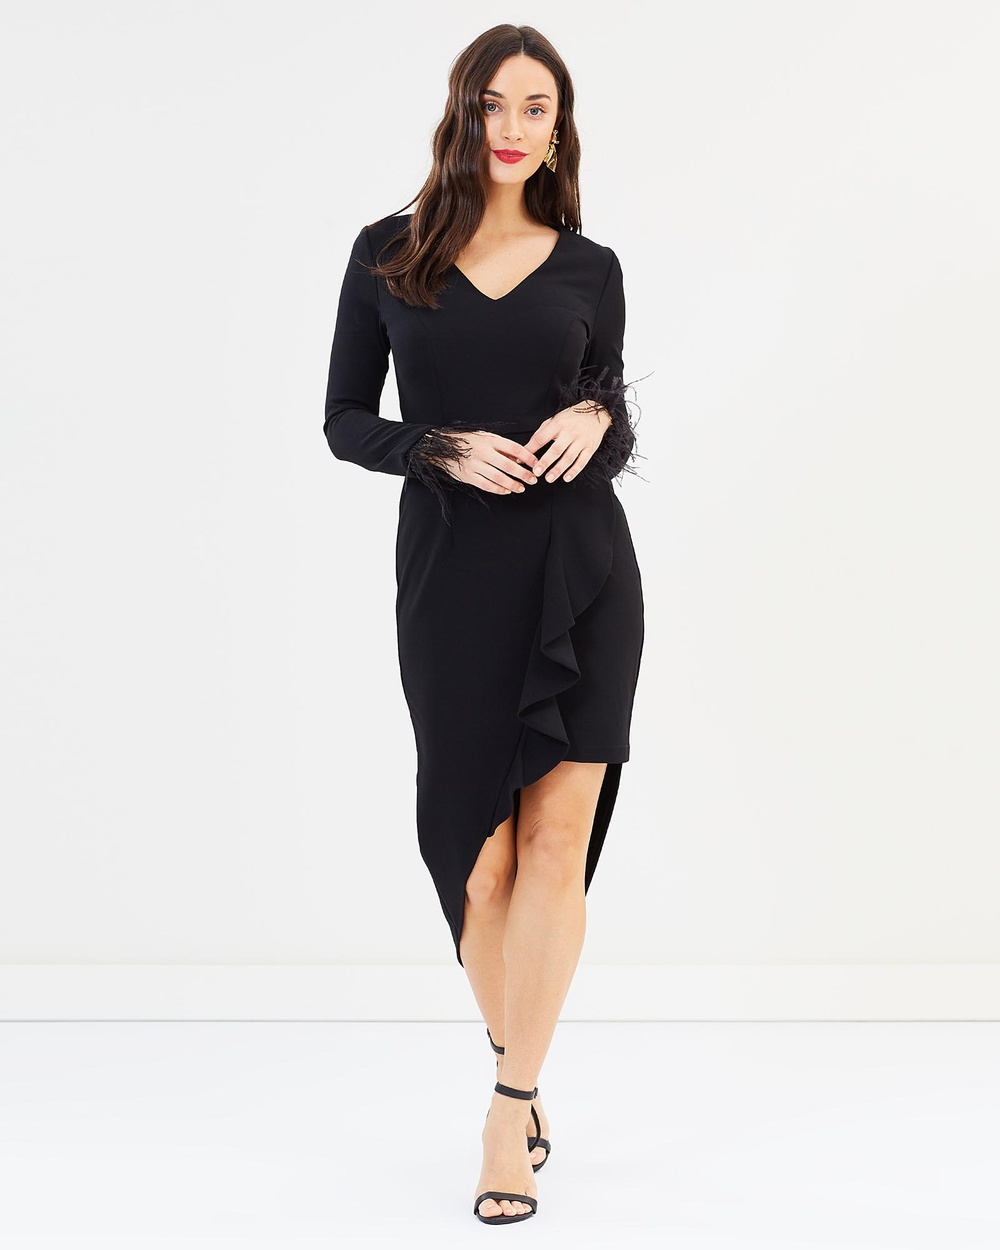 Romance by Honey and Beau Isadora Long Sleeve Dress Bridesmaid Dresses Black Isadora Long Sleeve Dress